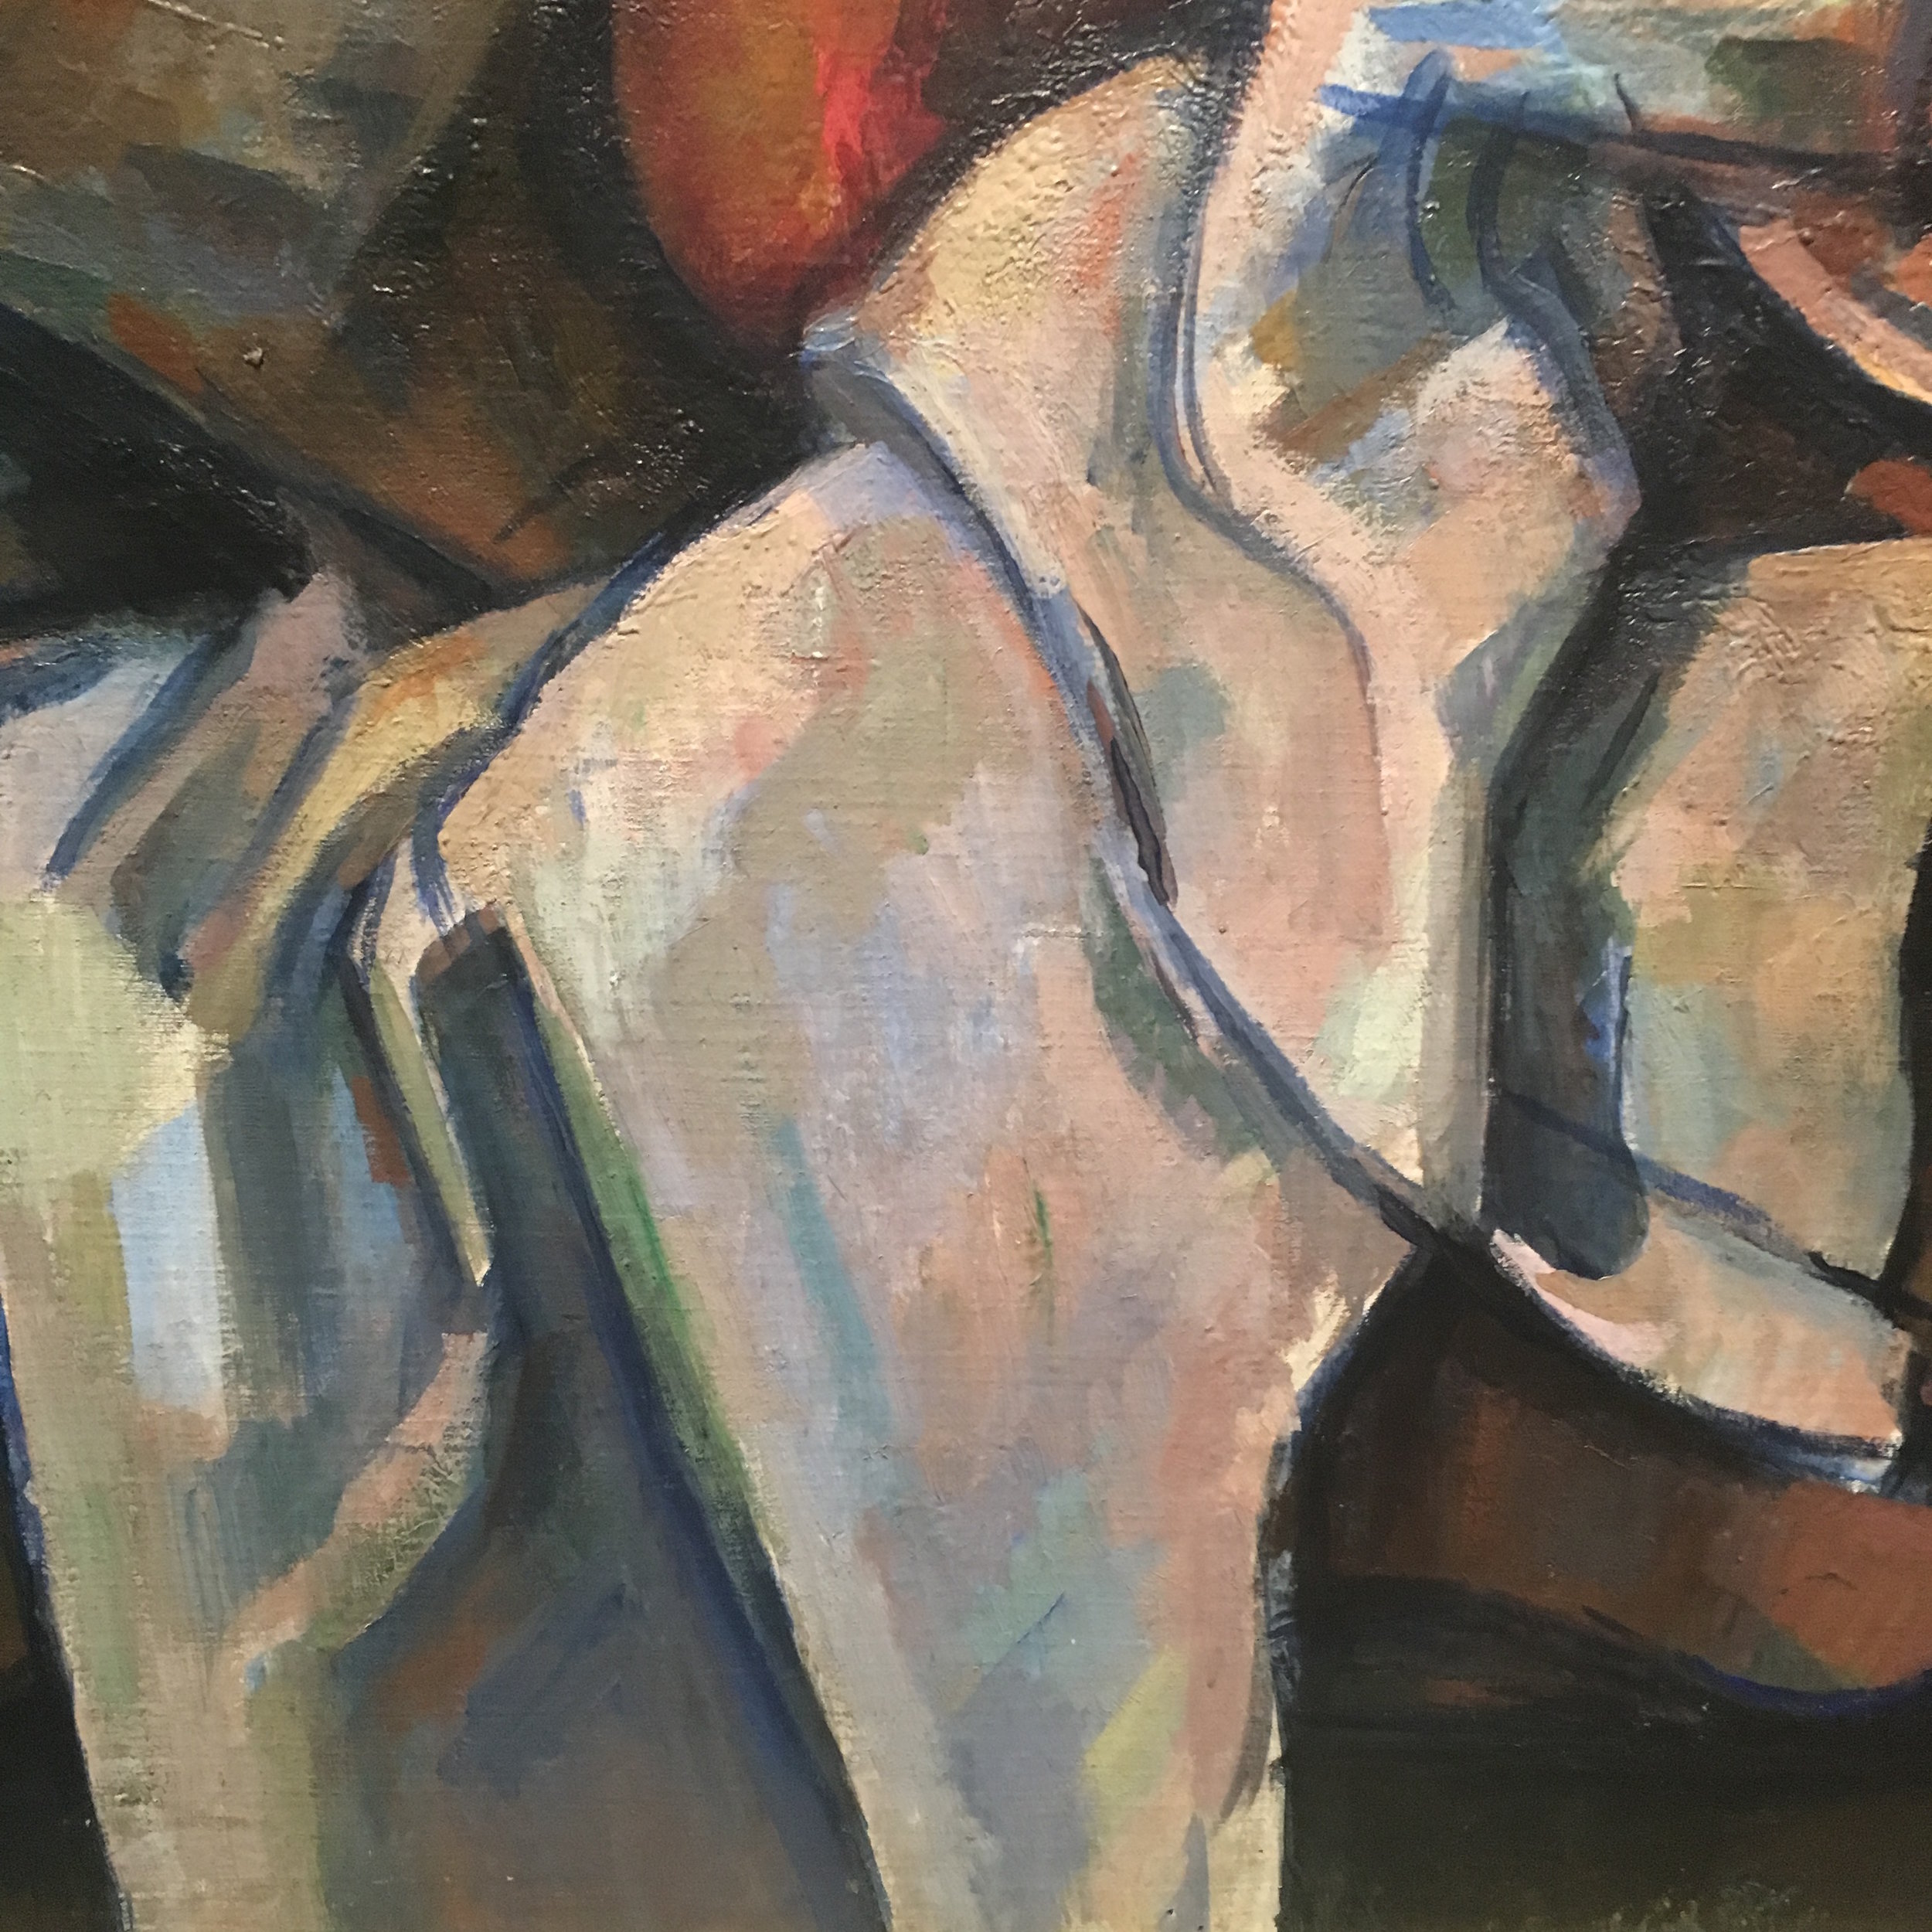 Cezanne_StillLife_detail2.JPG